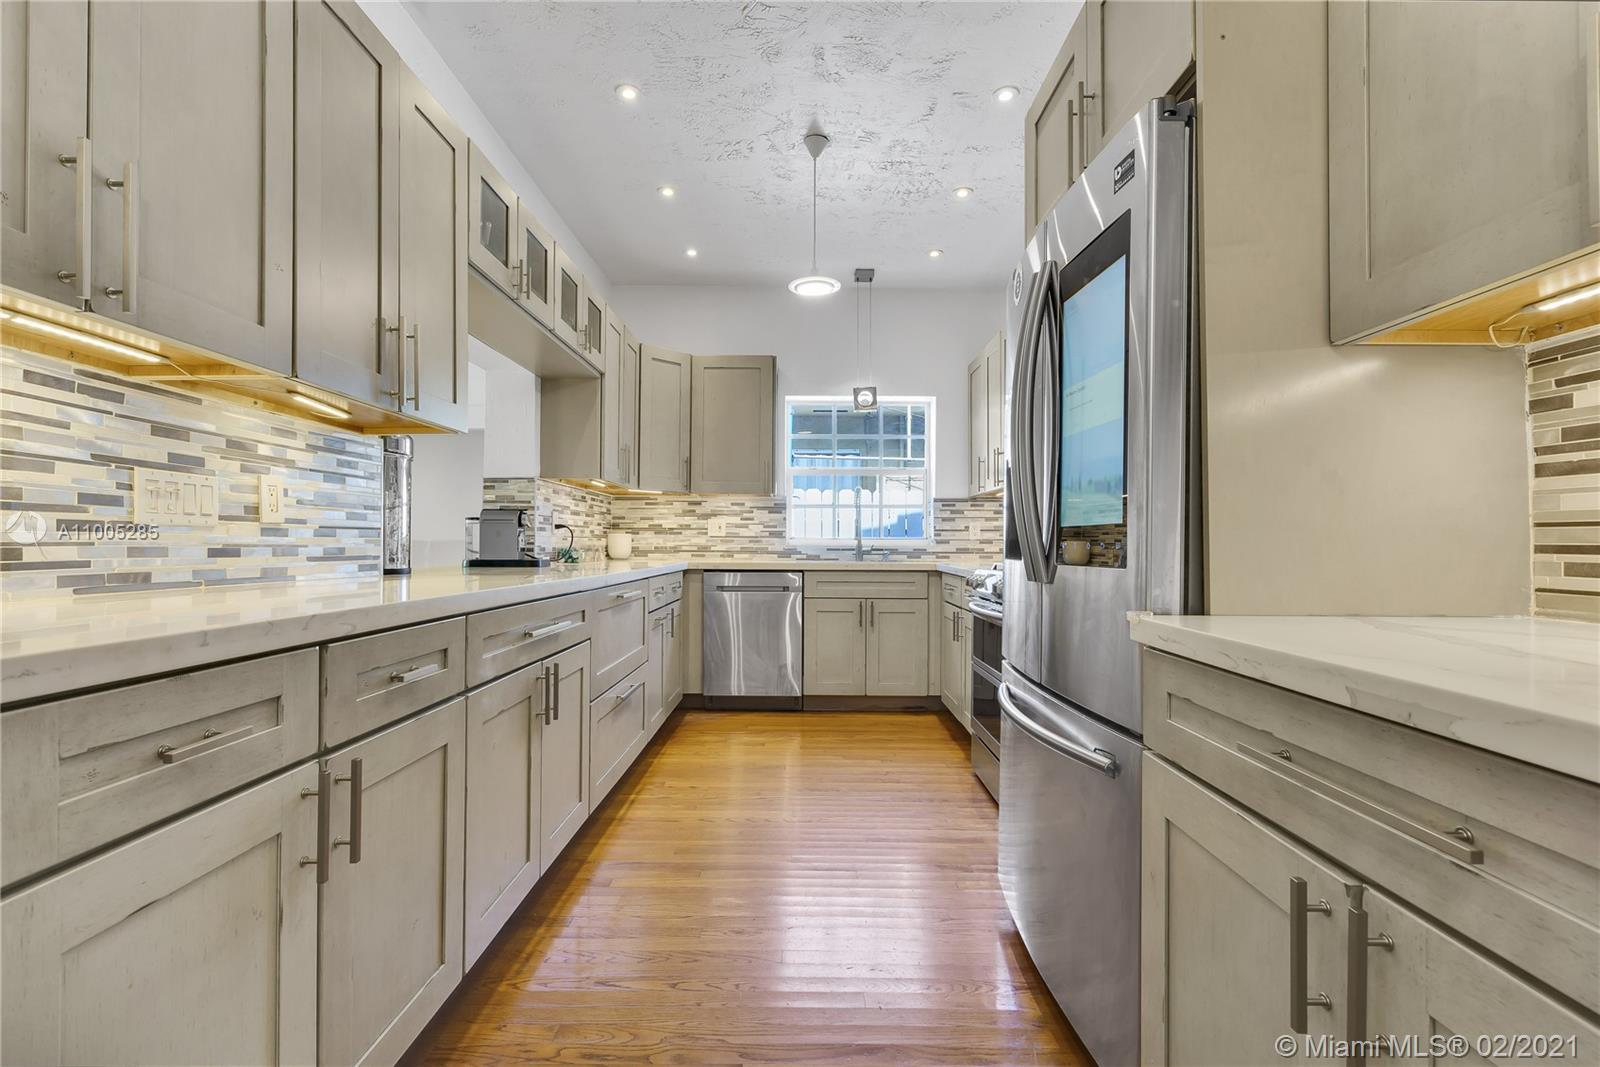 Beautiful warm and cozy Carlos Schoeppl's masterpiece in the heart of Miami Beach. This 4 bedroom 3